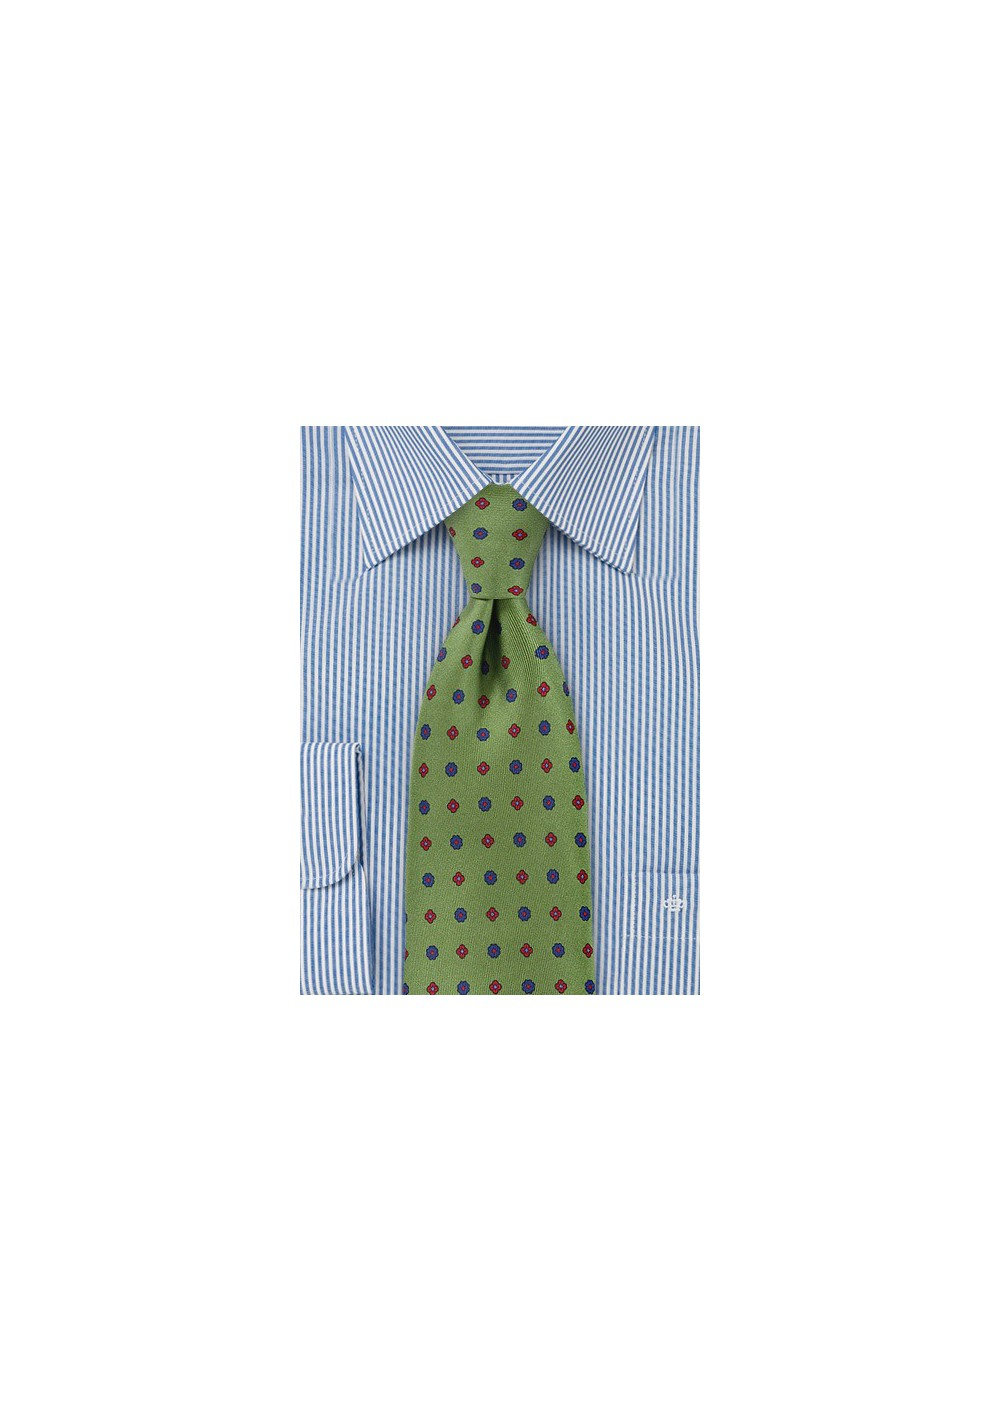 Retro Floral Grid Tie in Olive Green